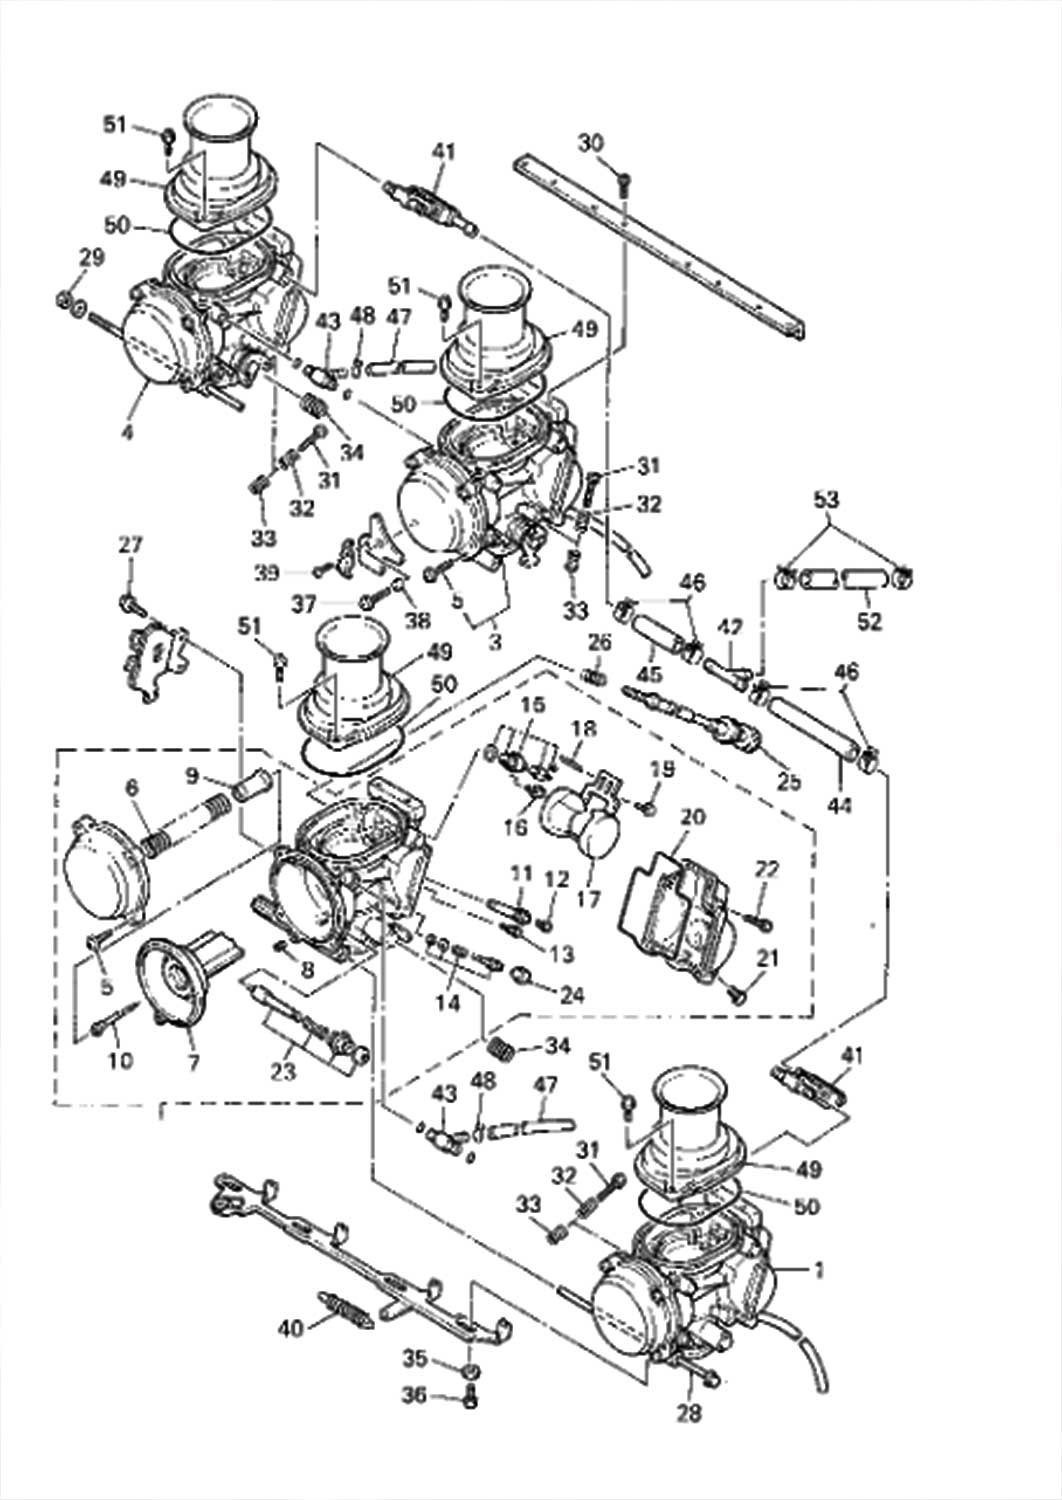 Yamaha Yzf600r Carburetor Diagram